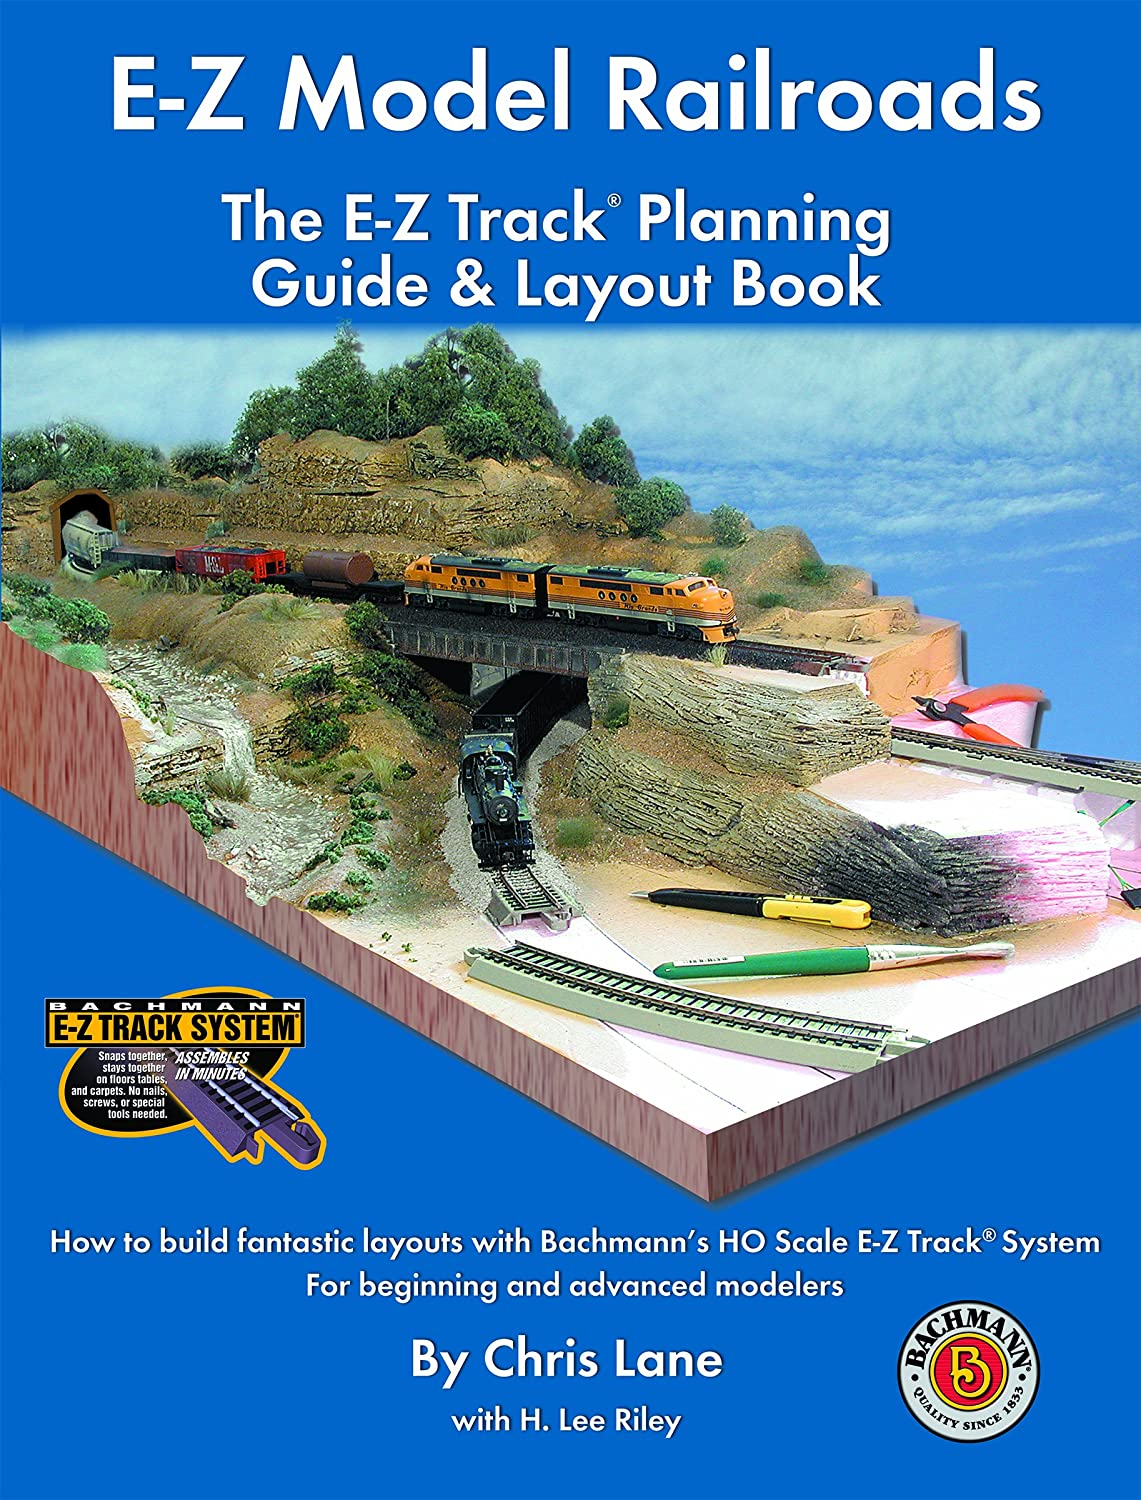 Amazon.com: E-Z Model Railroads: The E-Z Track Planning Guide & Layout  Book: Chris Lane, H. Lee Riley: Toys & Games